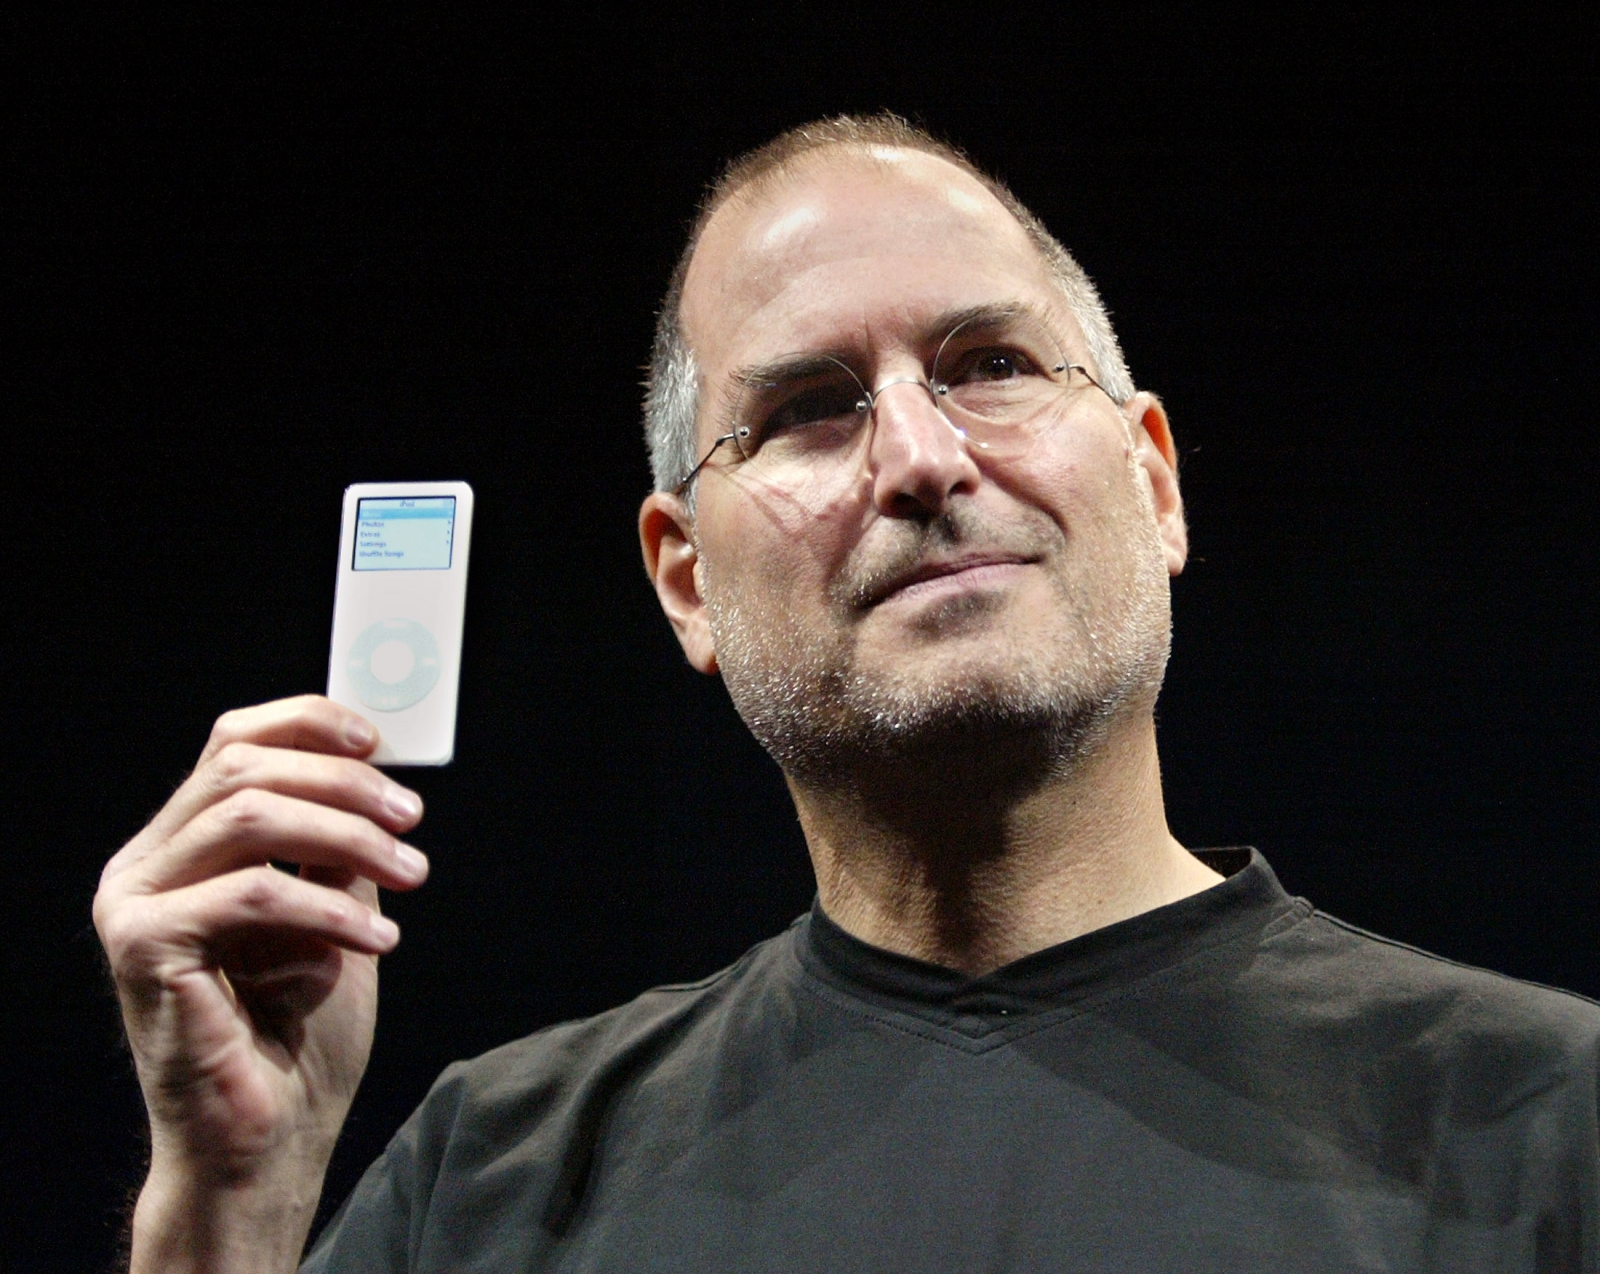 Steve Jobs turned down liver transplant